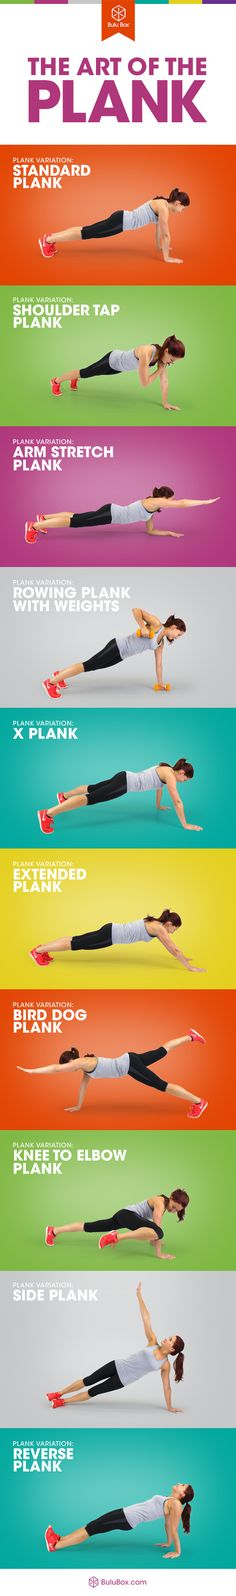 Want 6 pack abs and toned arms? These plank variations will challenge you...